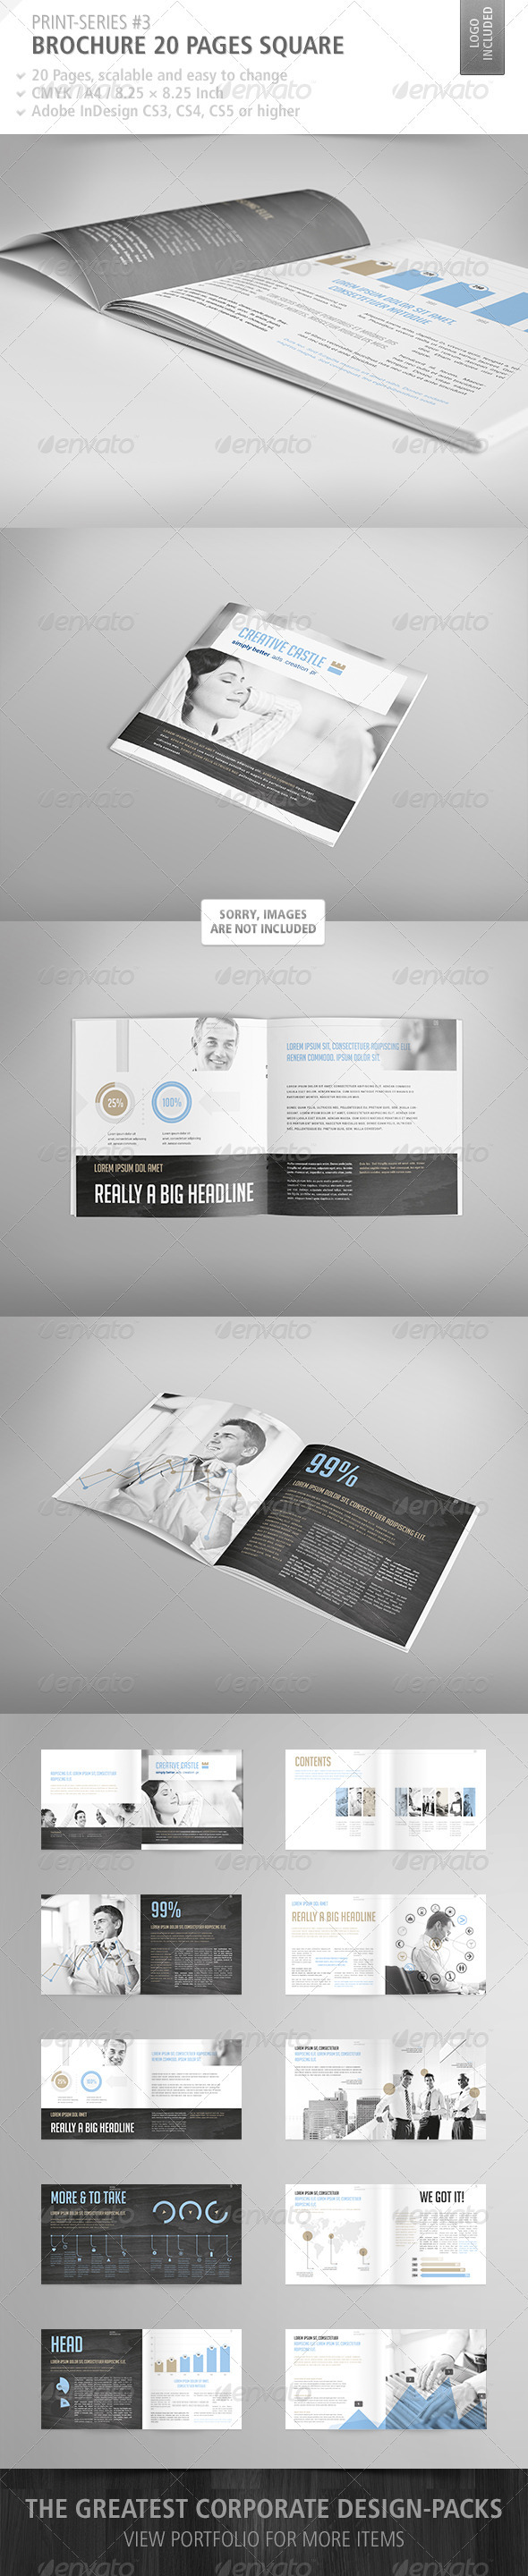 GraphicRiver Brochure Square 20 Pages Print-Series #3 3928251